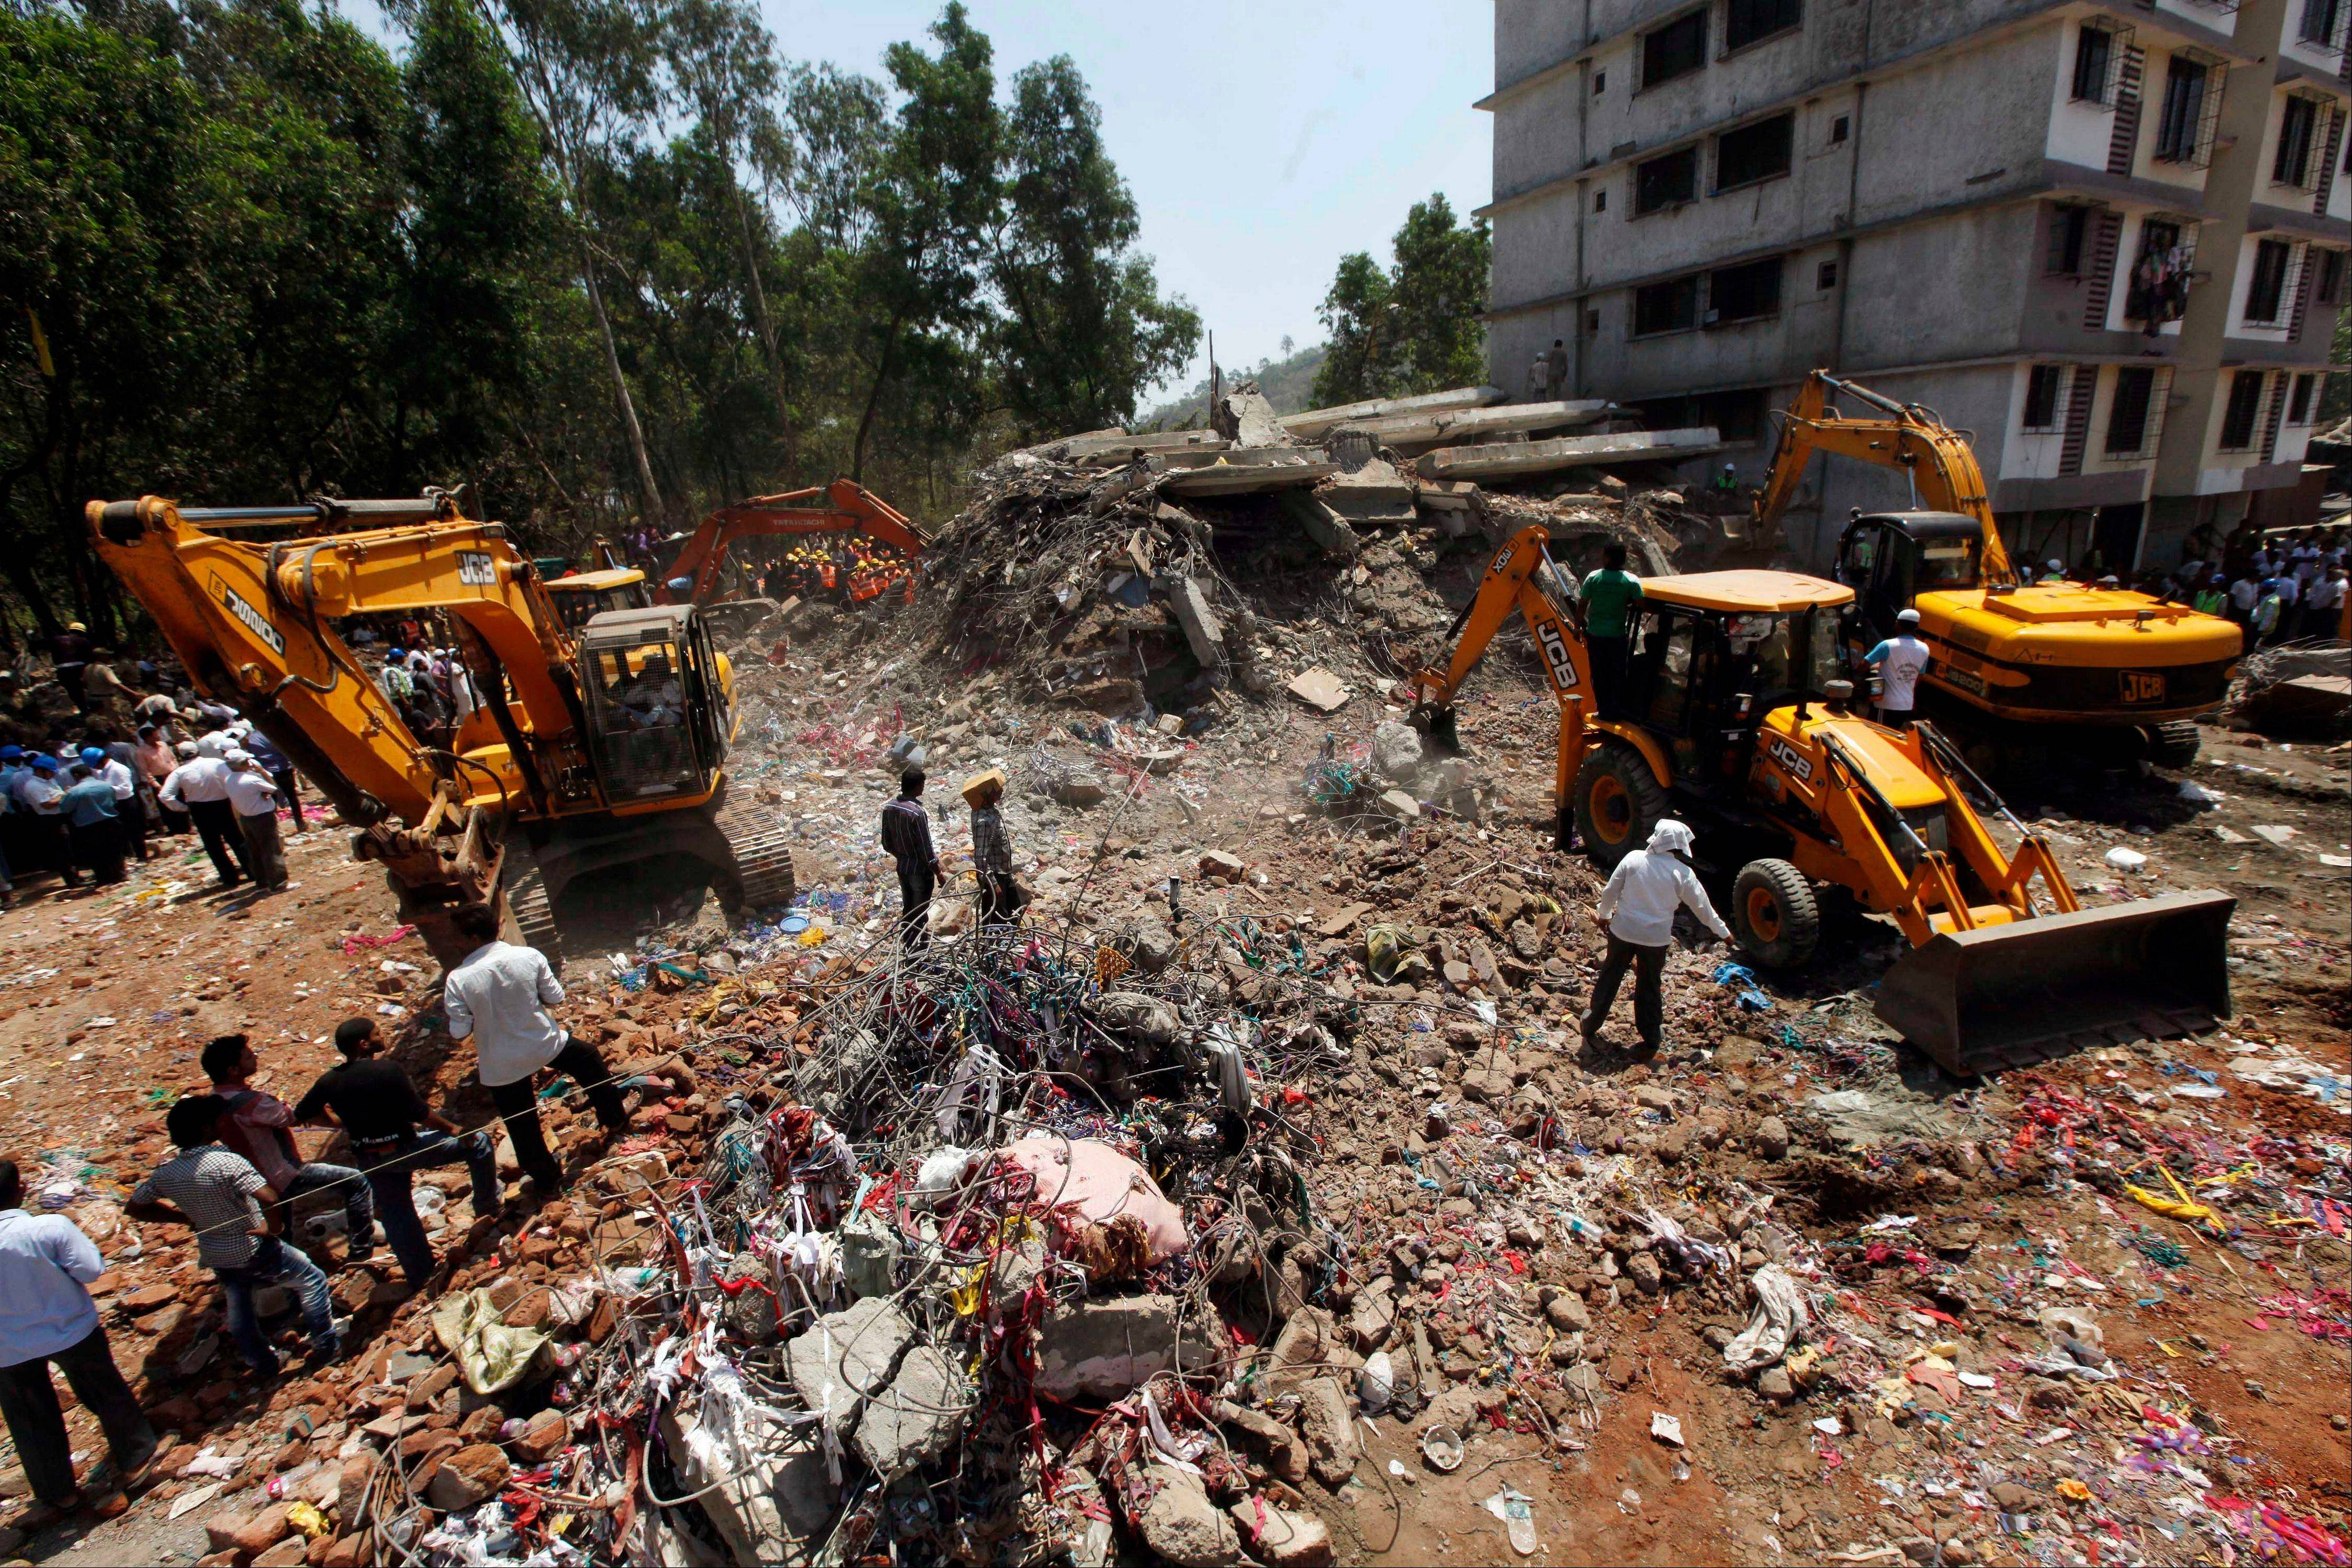 Rescue operation continues at the site of a building collapse on the outskirts of Mumbai, India, Friday, April 5, 2013. The half-finished building that was being constructed illegally in a suburb of India's financial capital collapsed Thursday, killing 35 people and injuring more than 50 others, police said Friday.